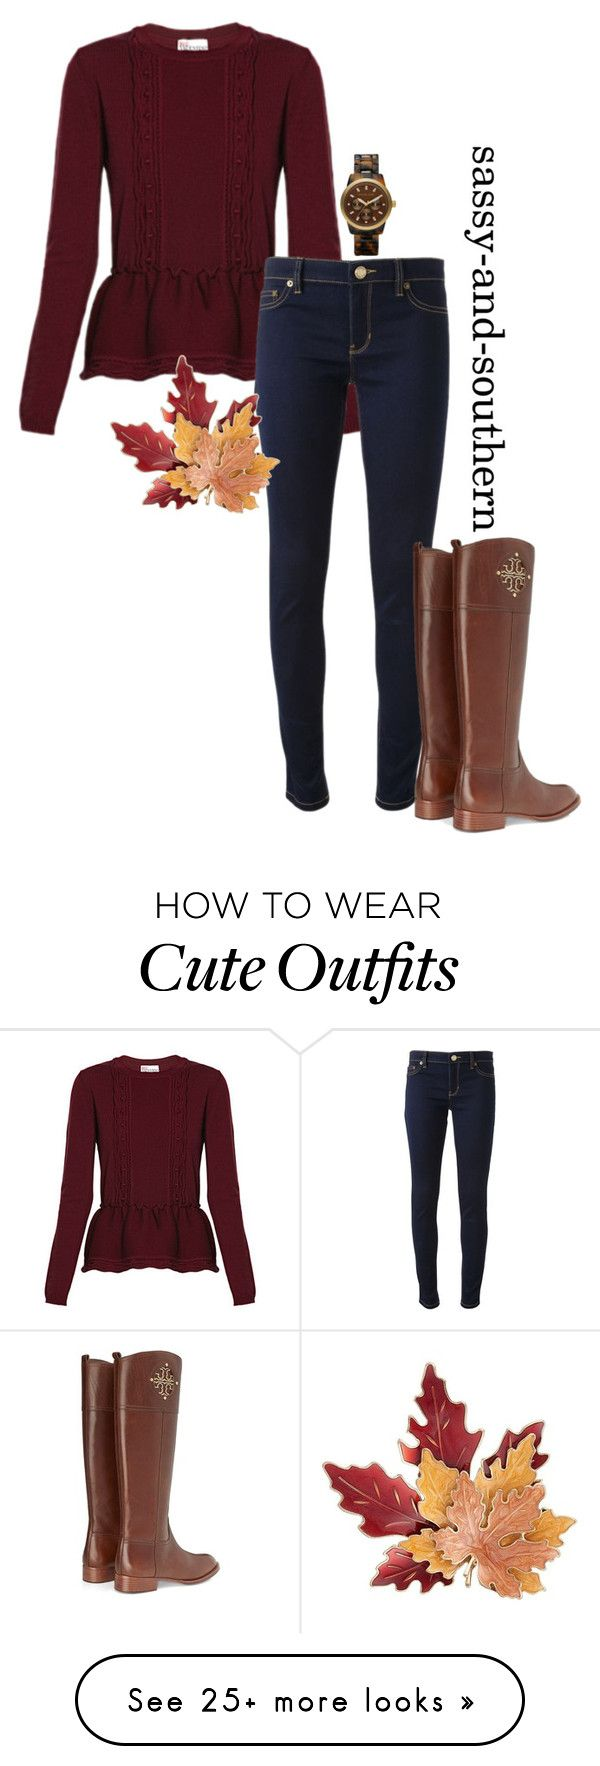 """cute fall outfit"" by sassy-and-southern on Polyvore featuring RED Valentino, Michael Kors, Croft & Barrow, Tory Burch, MICHAEL Michael Kors and sassysouthernfall"